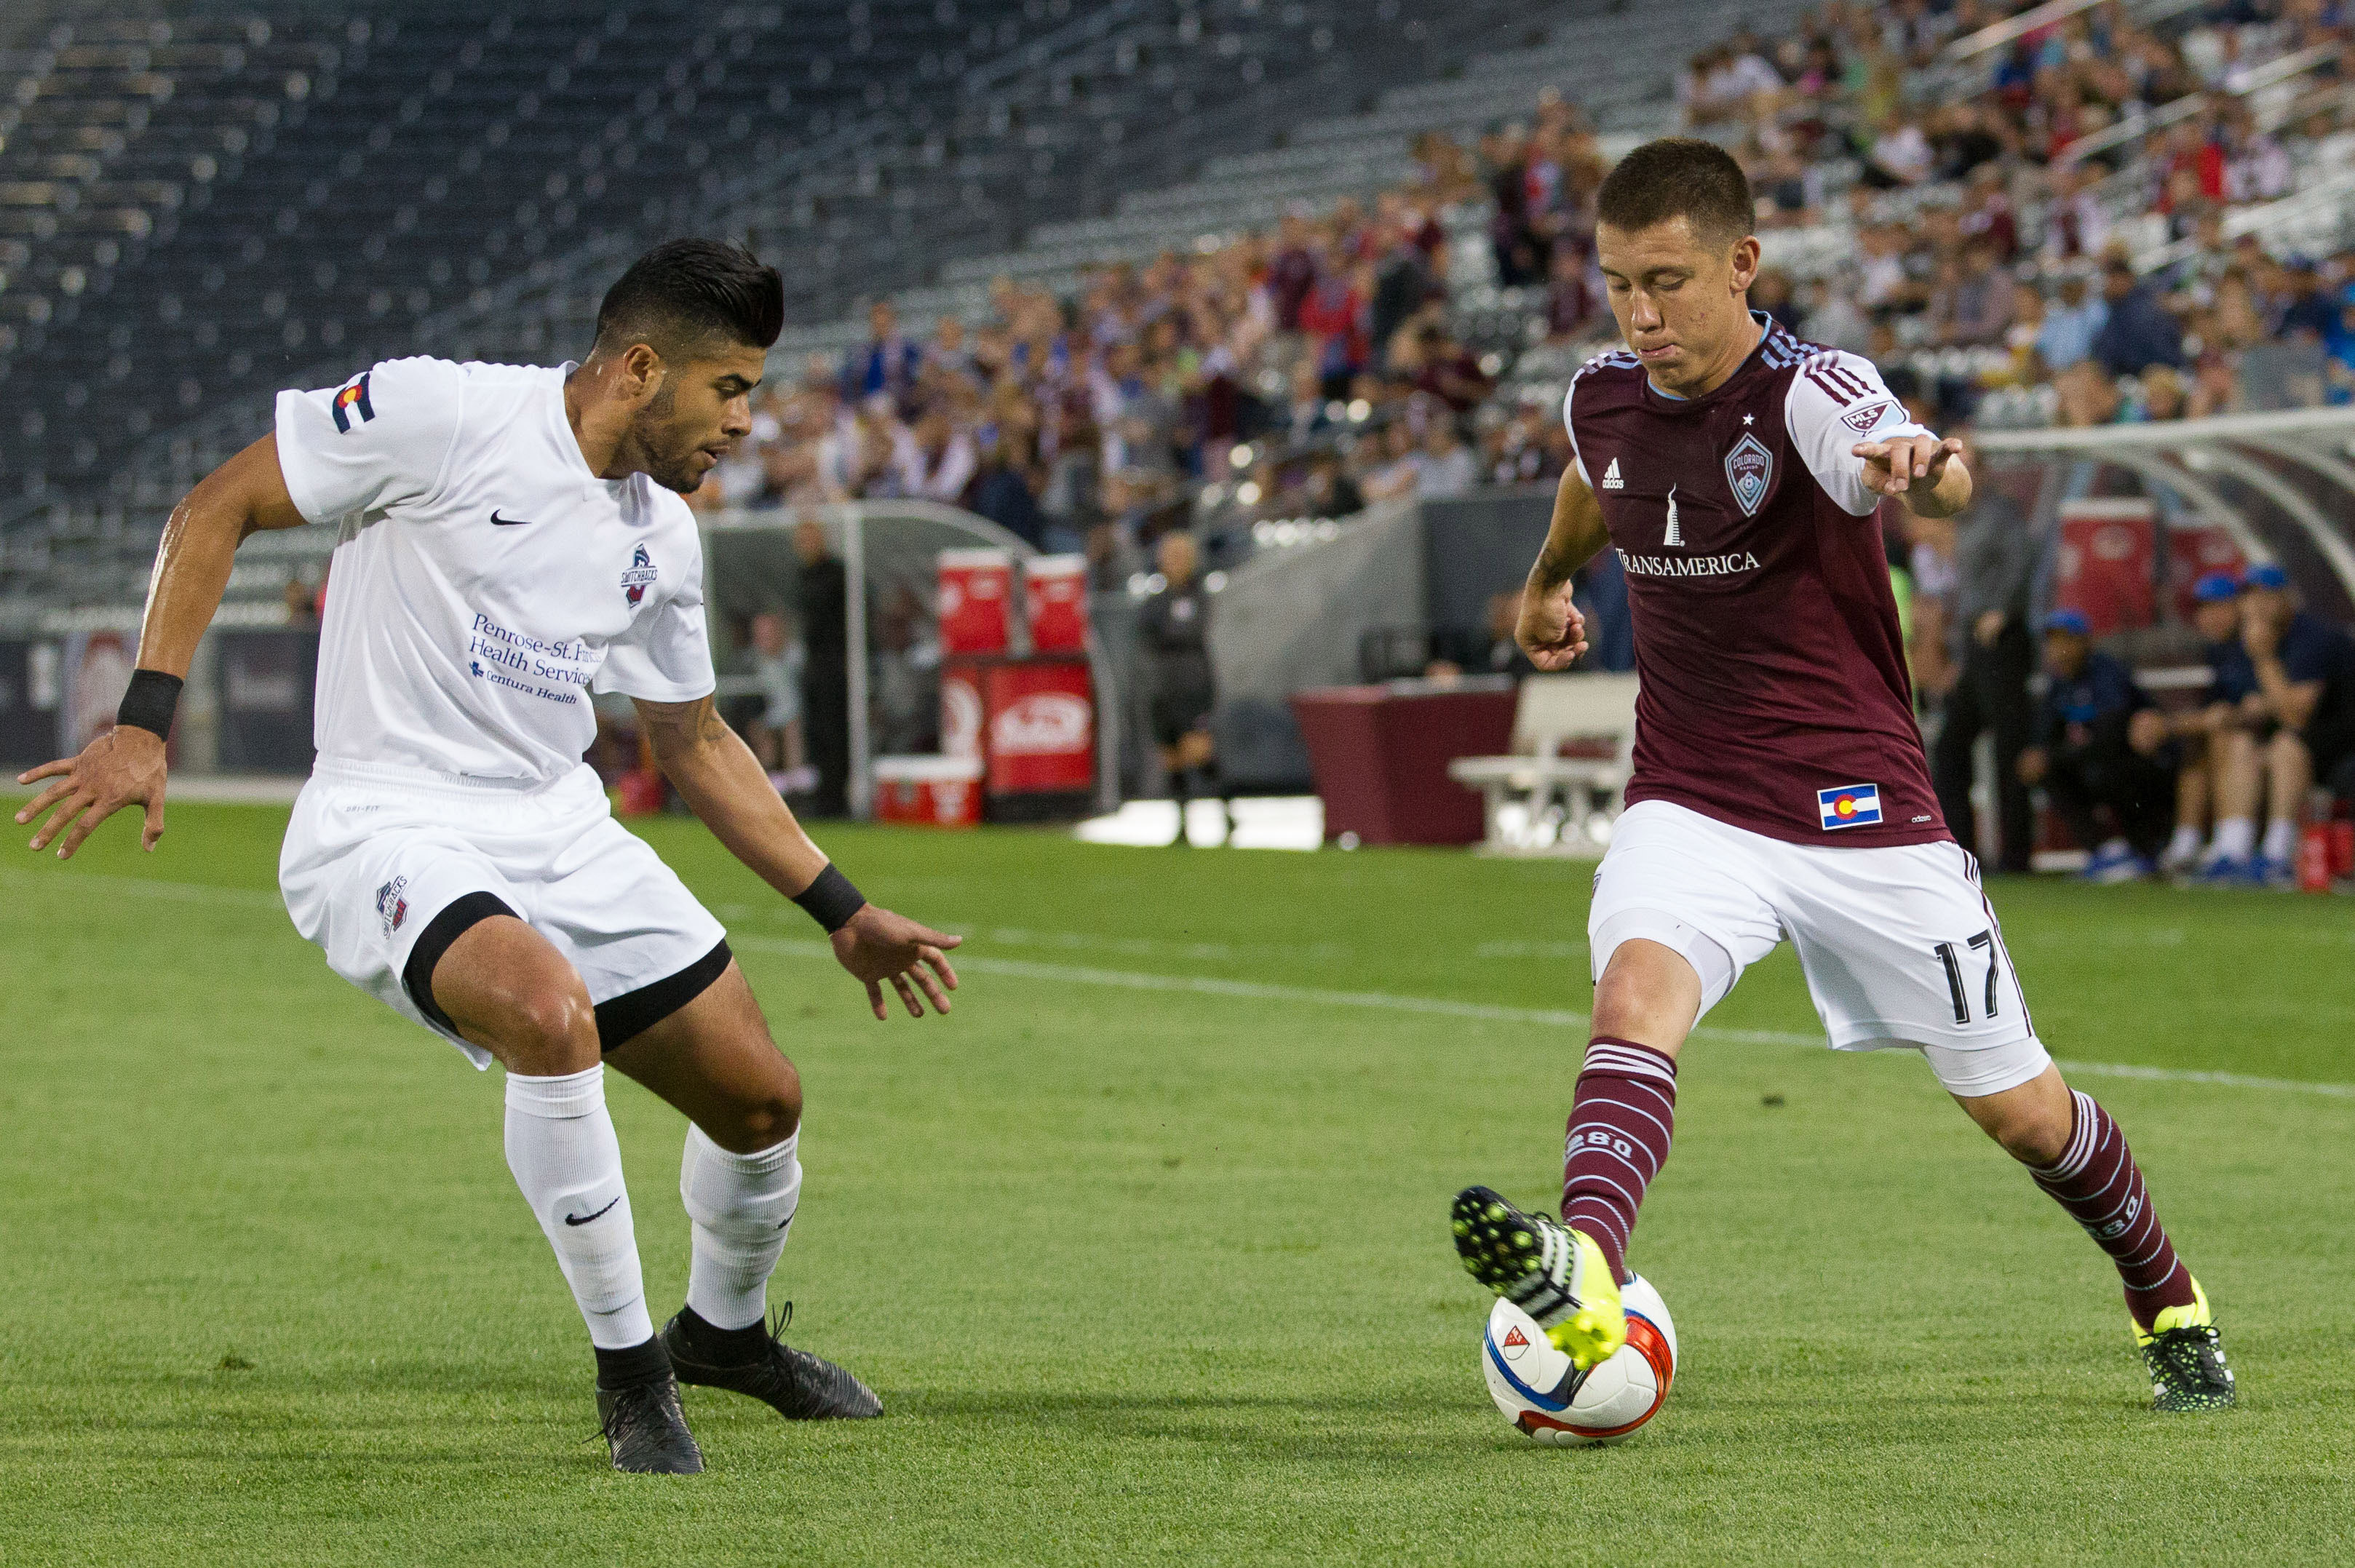 Colorado Rapids midfielder Dillon Serna (17) dribbles the ball against Switchbacks FC midfielder Rony Argueta (8) in the first half at Dick's Sporting Goods Park.